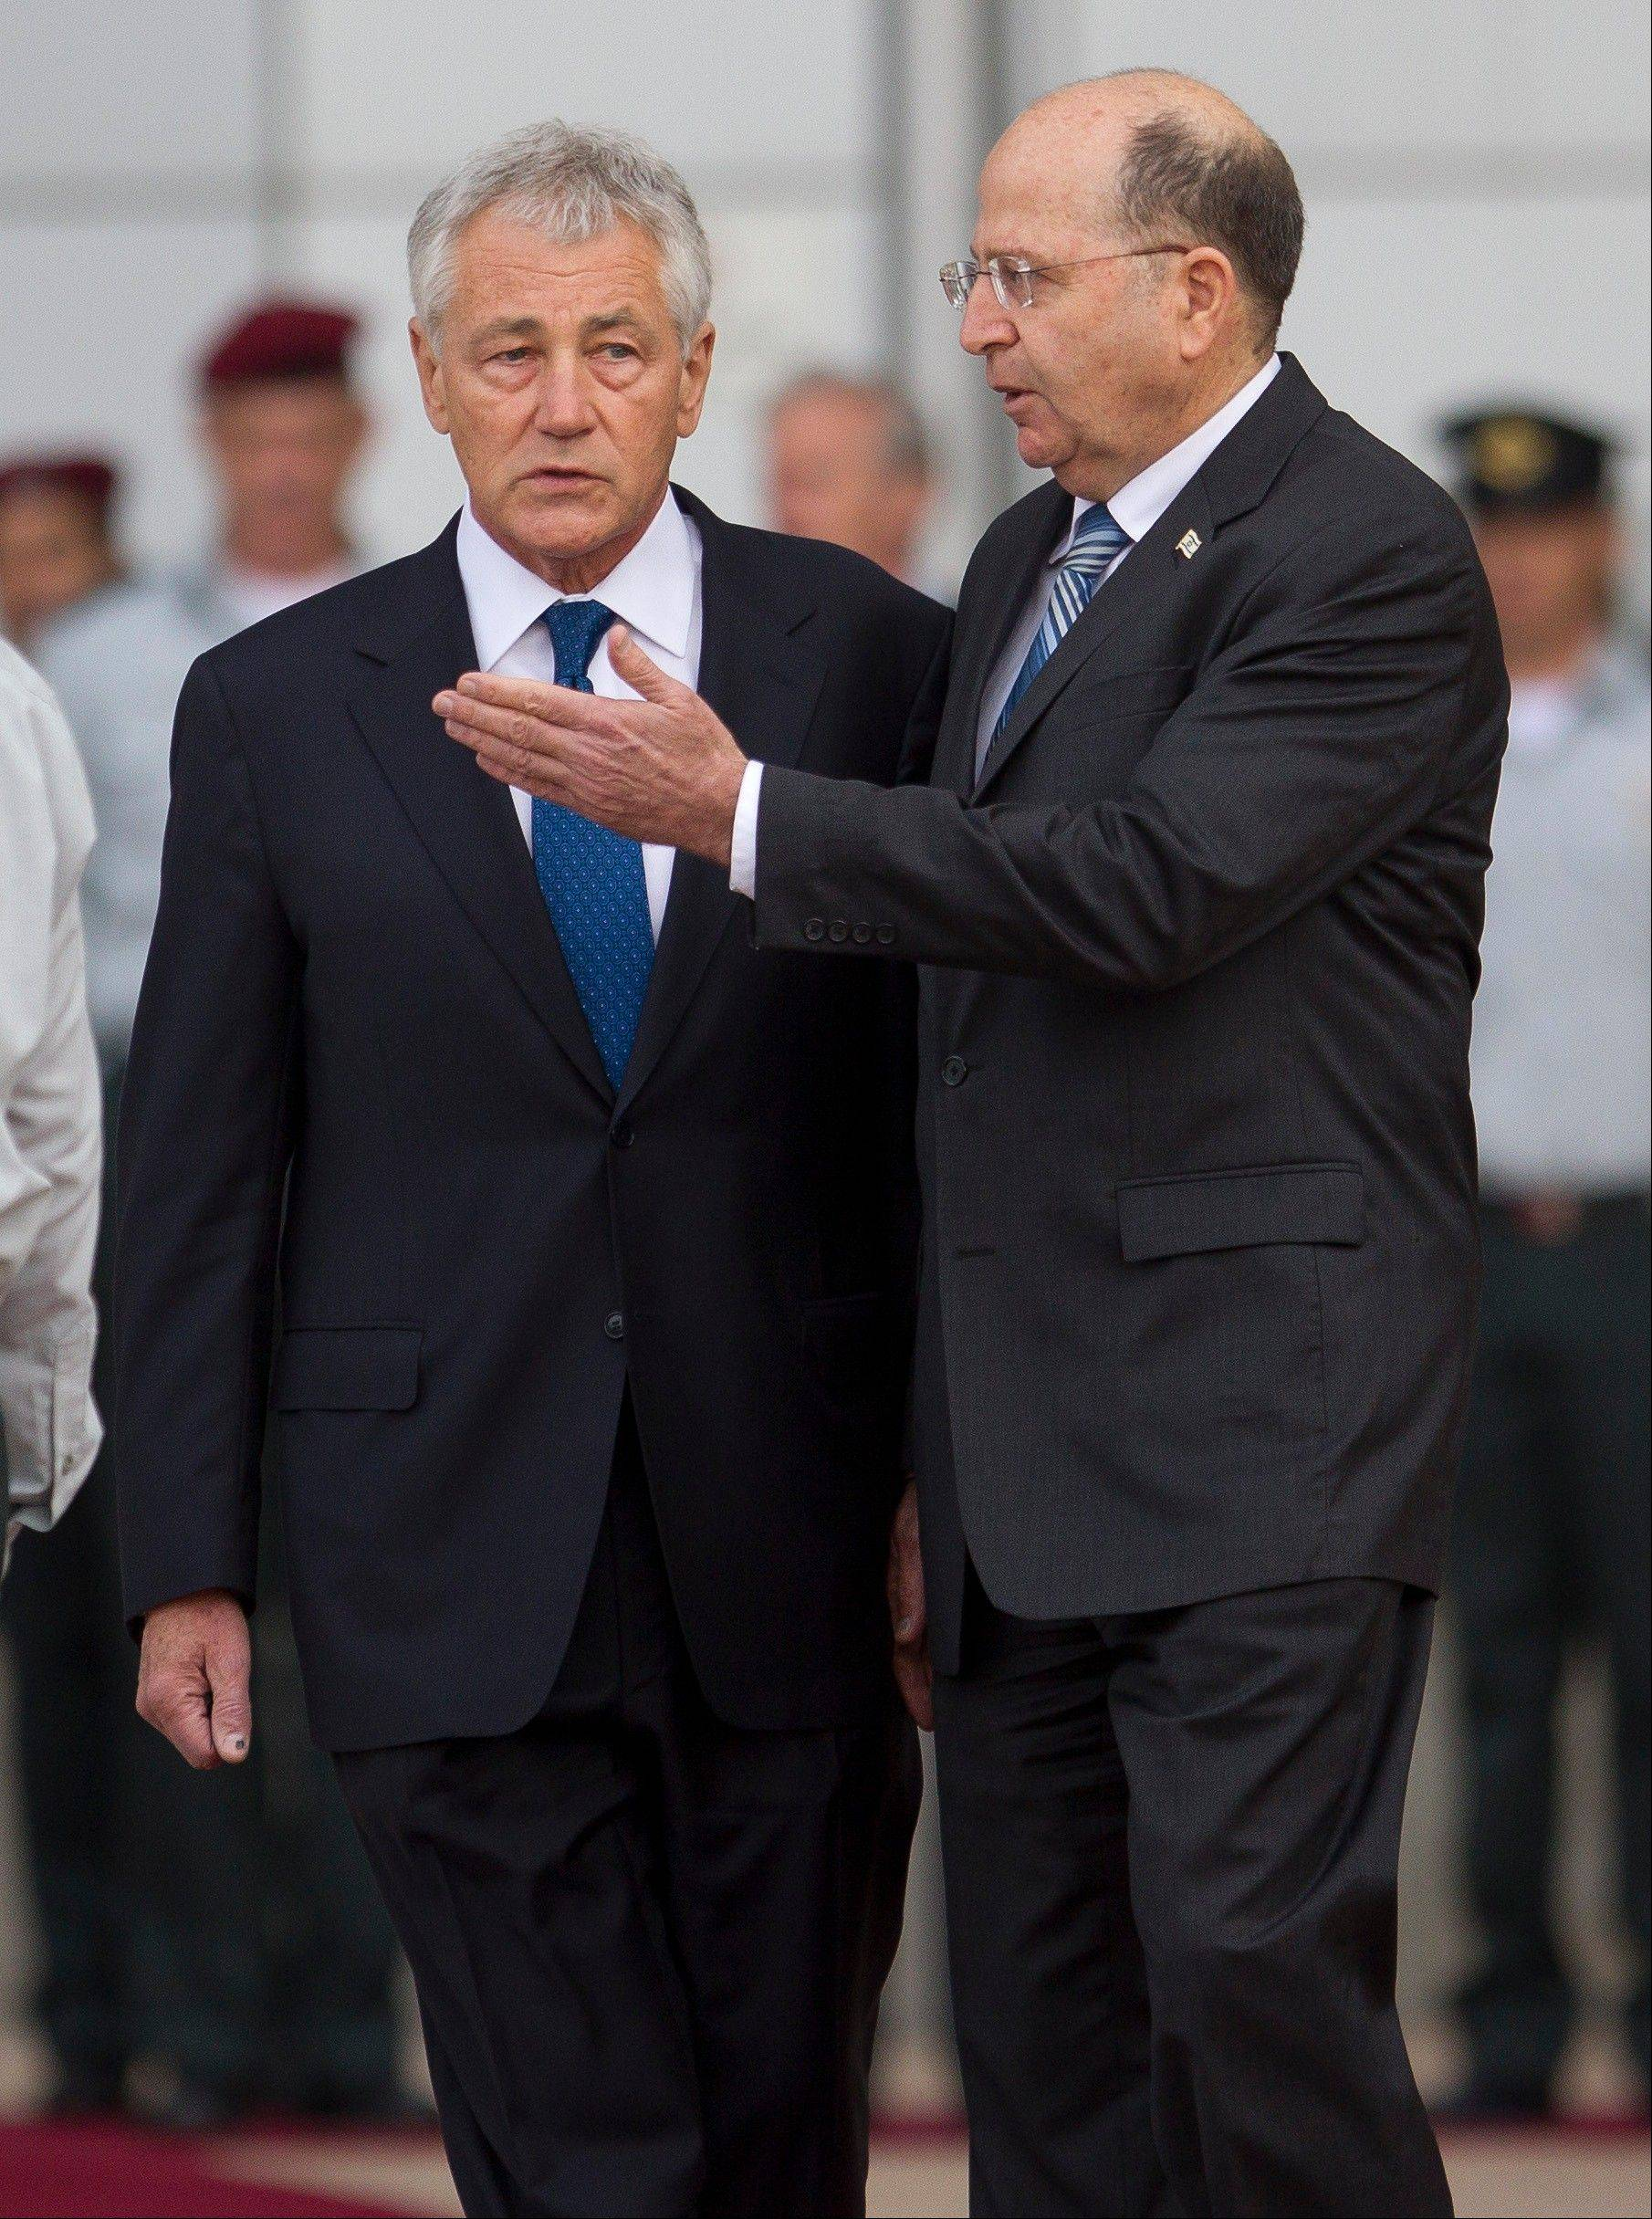 U.S. Defense Secretary Chuck Hagel, left, reviews an honor guard with Israel's Defense Minister Moshe Yaalon in Hakirya military base in Tel Aviv, Israel, Monday.